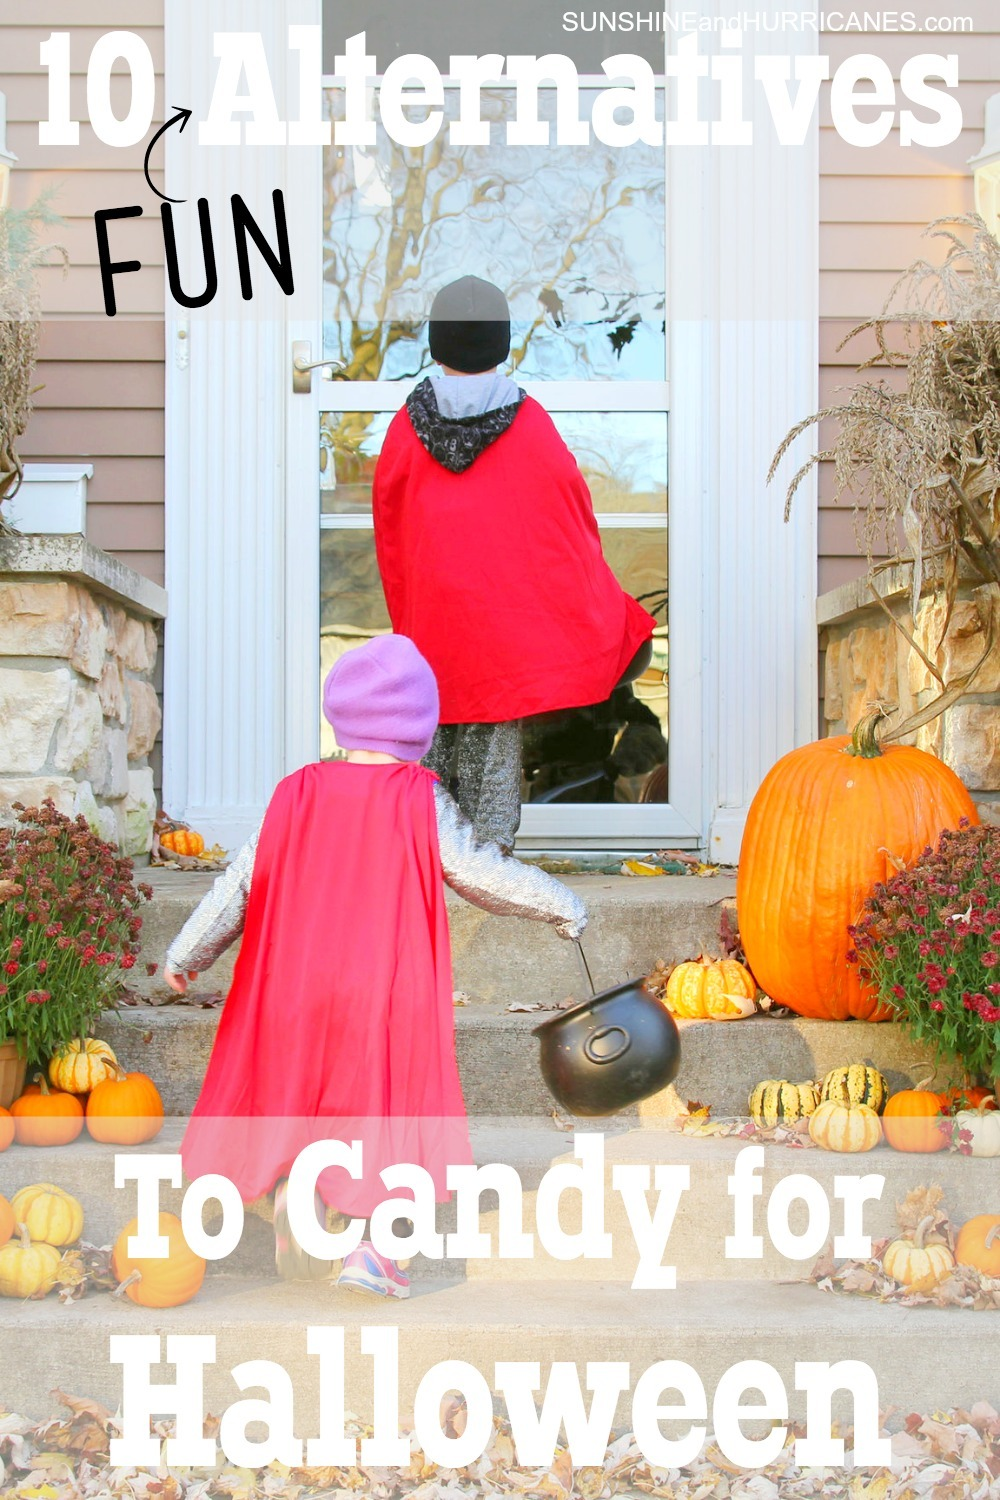 Looking for a treat for Halloween that is healthy, but won't make kids feel like they got tricked? Here are 10 alternatives to candy for Halloween that are guaranteed to be as big a hit as candy and still affordable too!